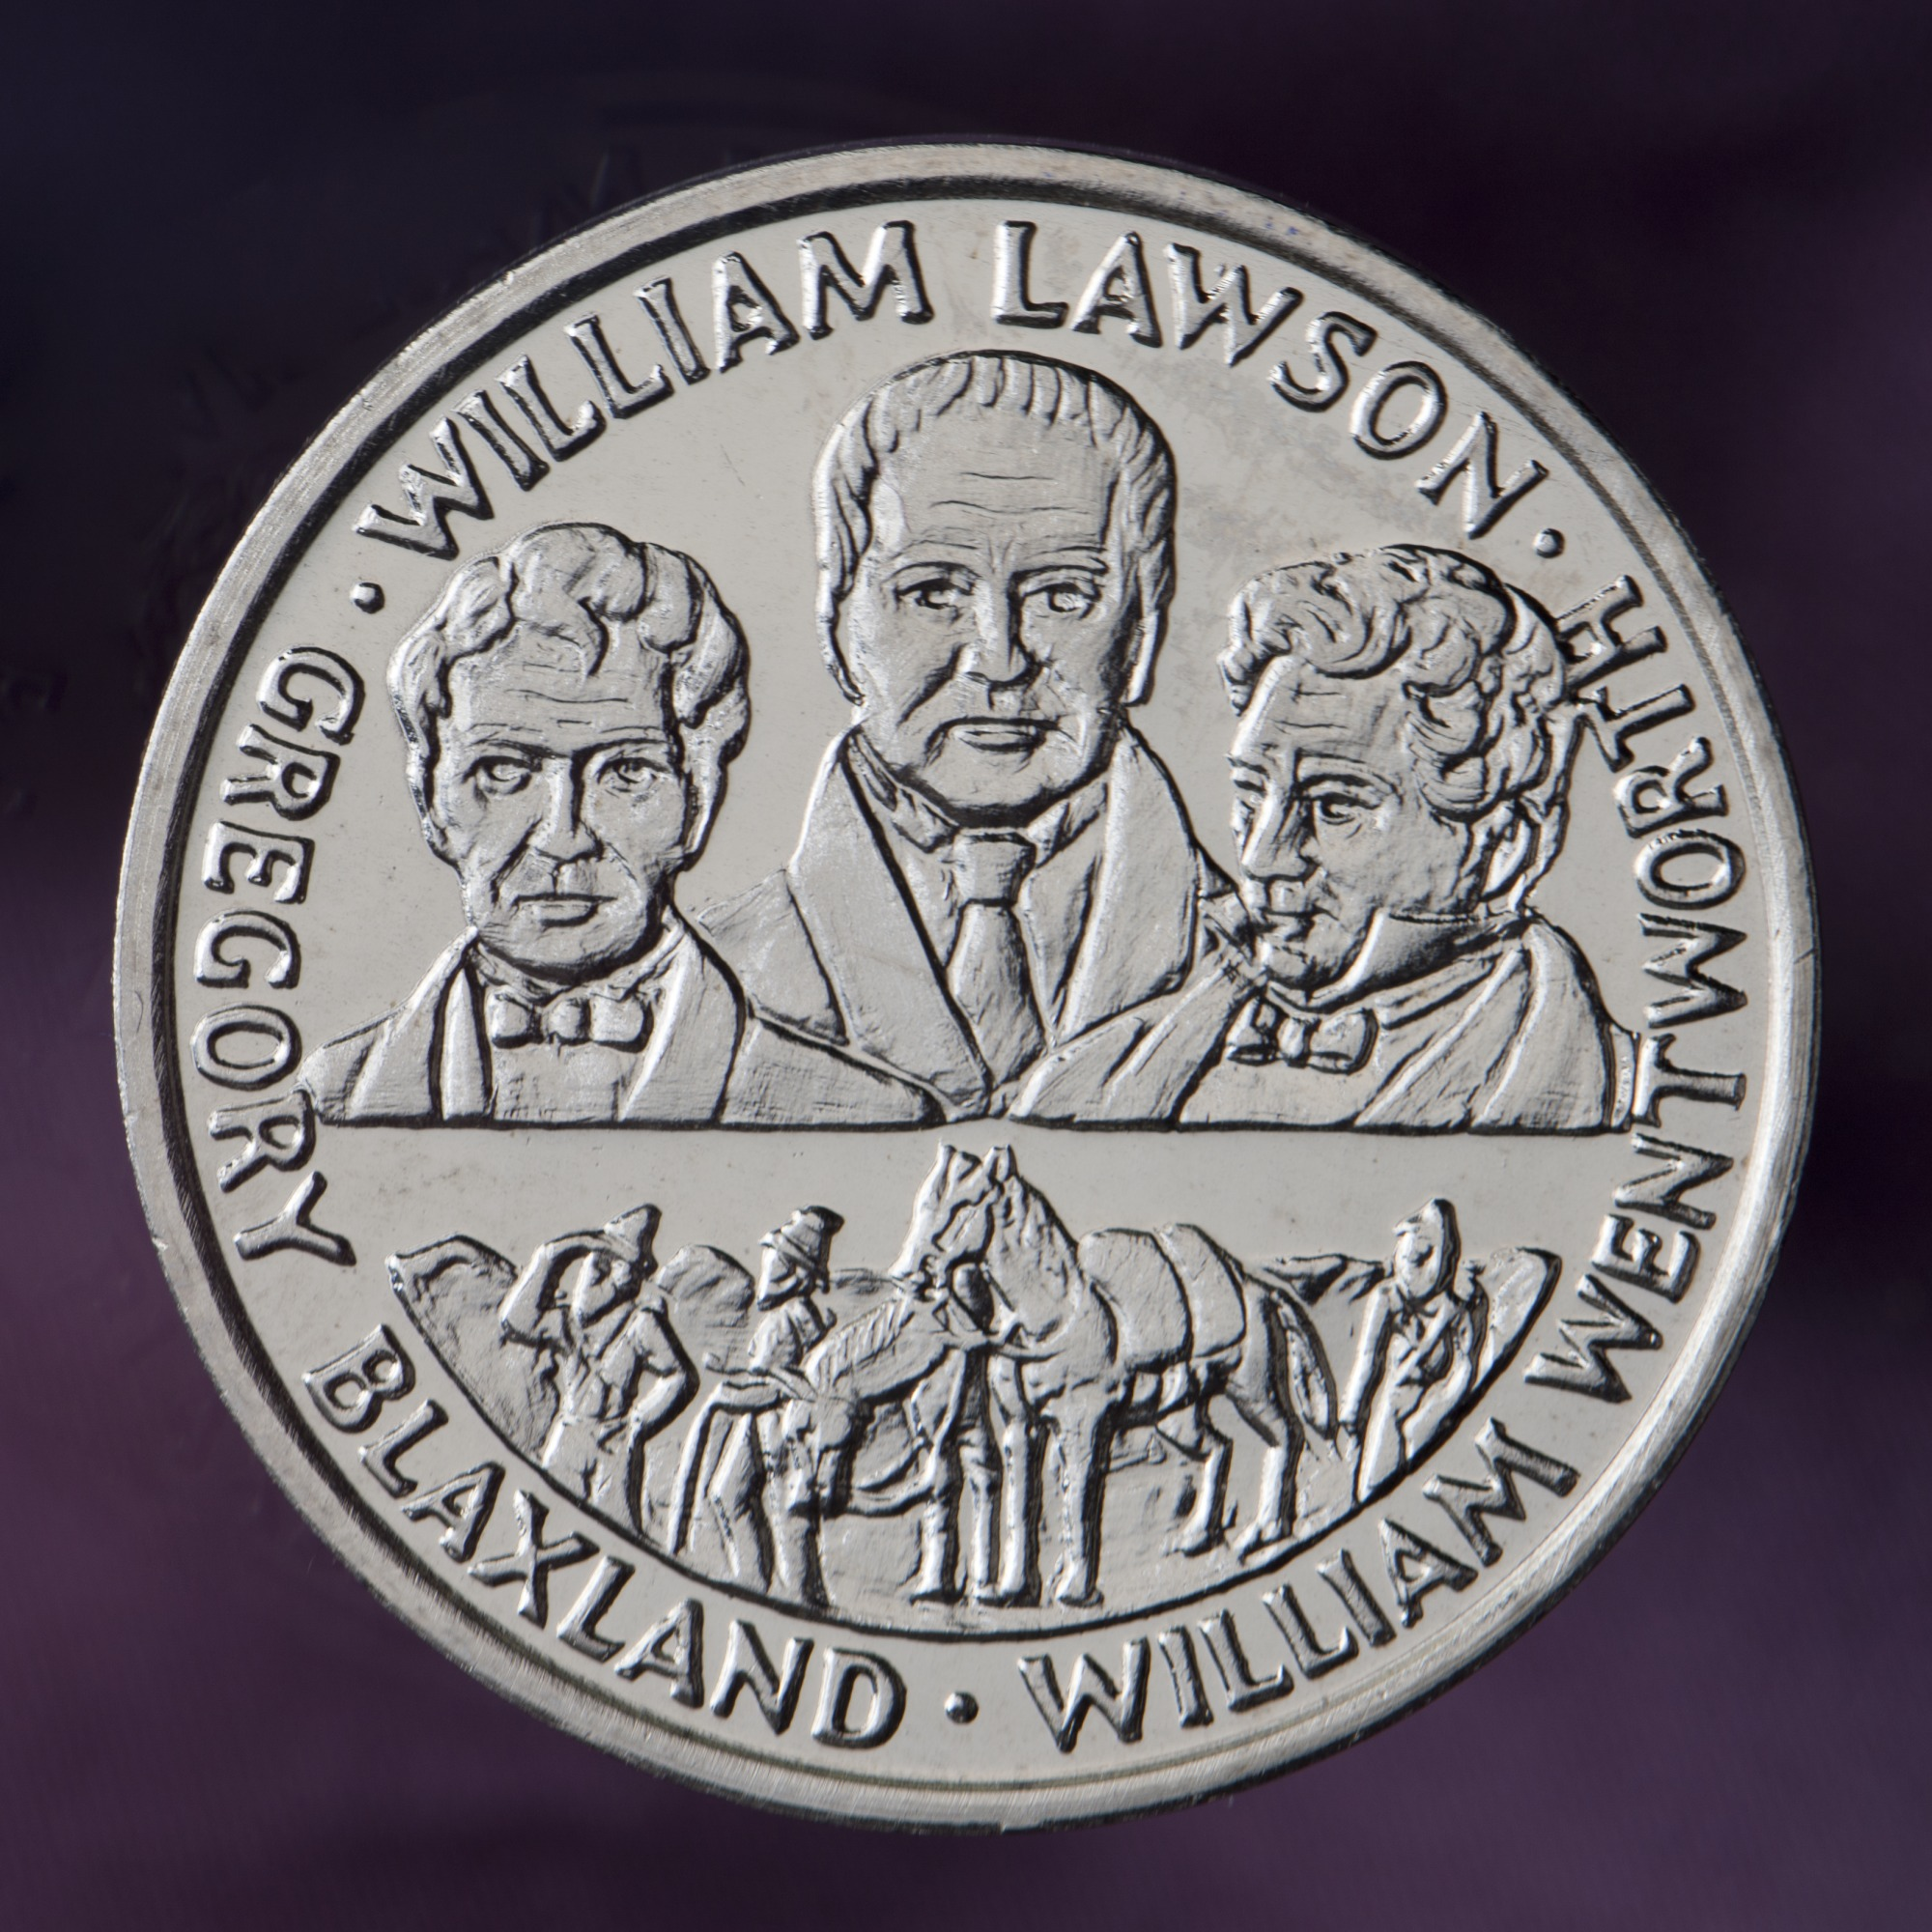 Australian bicentennial commemorative medal depicting explorers Blaxland, Wentworth and Lawson